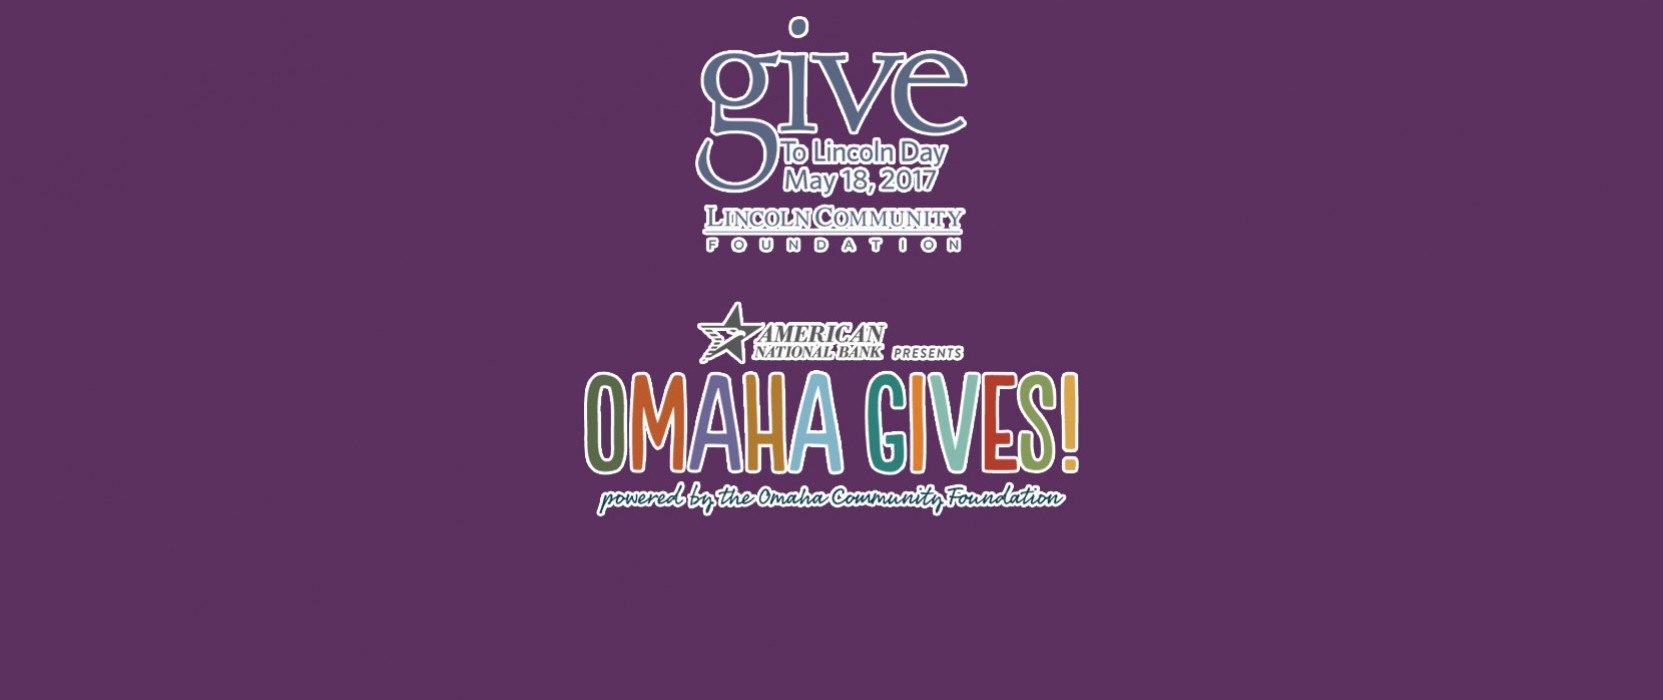 Madonna Foundation thanks Give to Lincoln Day and Omaha Gives donors